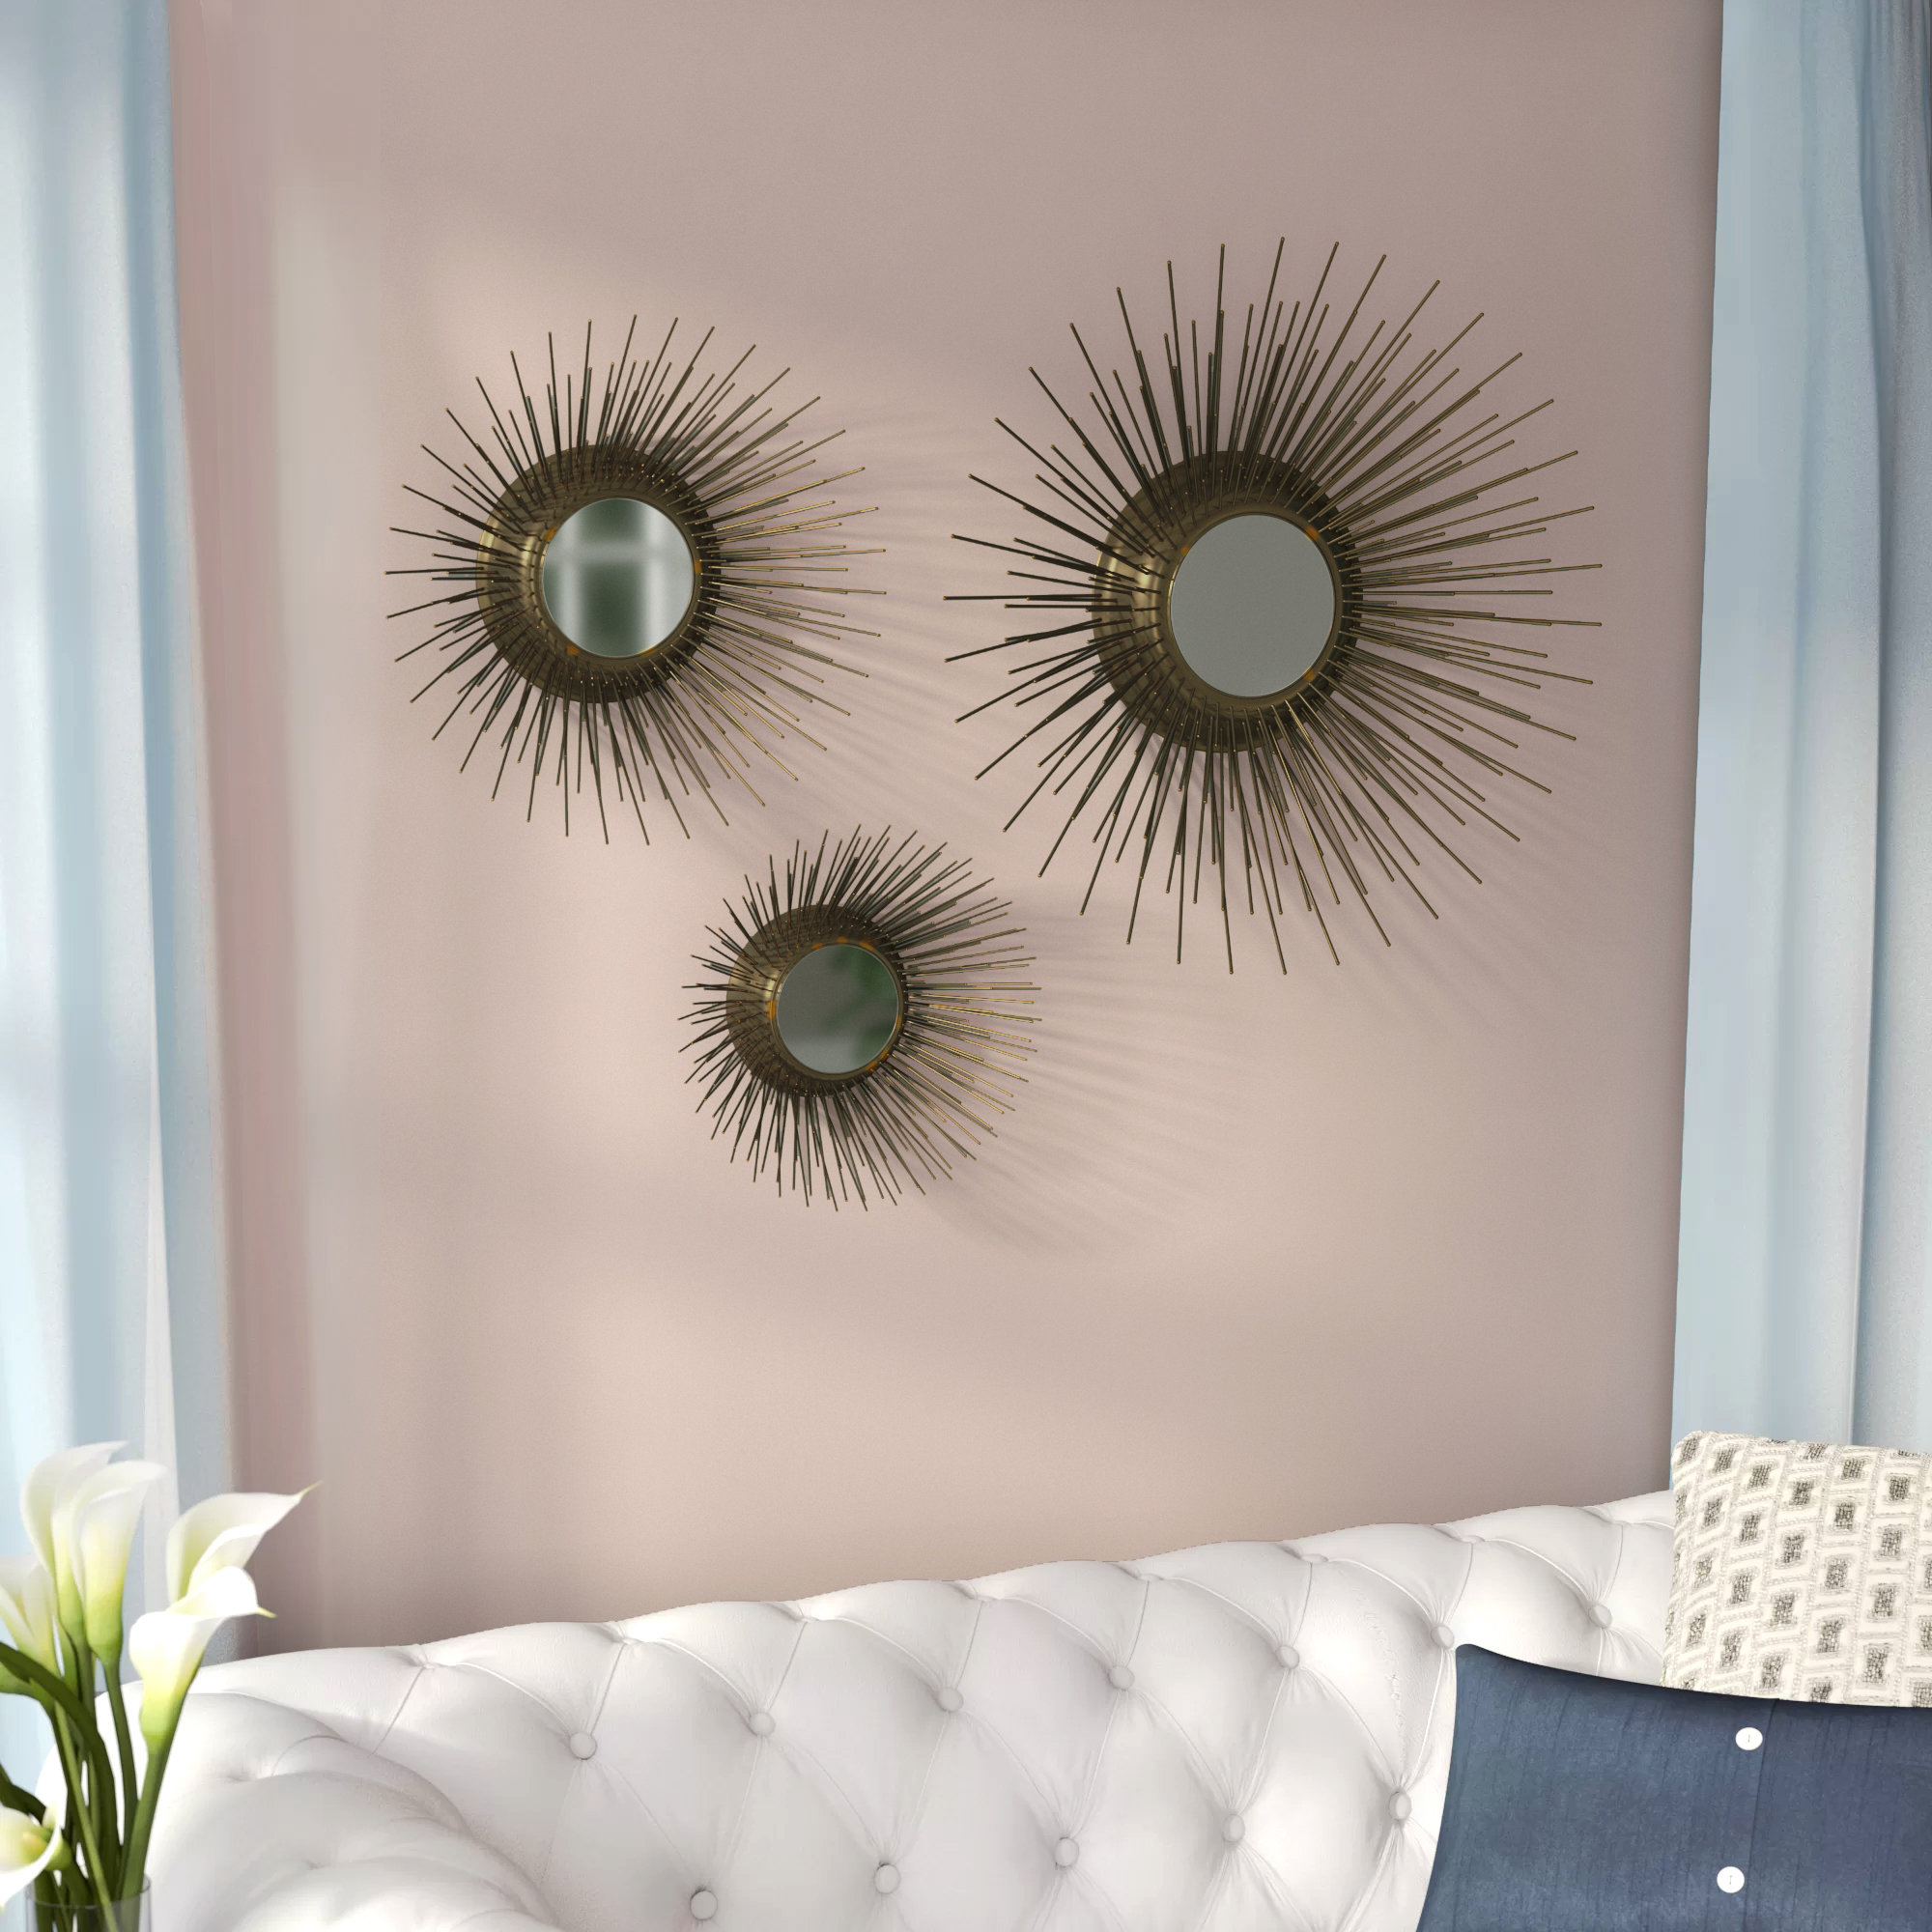 Most Recently Released Starburst Wall Decor By Willa Arlo Interiors In Willa Arlo Interiors Warfel 3 Piece Sunburst Triptych Mirror Set (View 11 of 20)